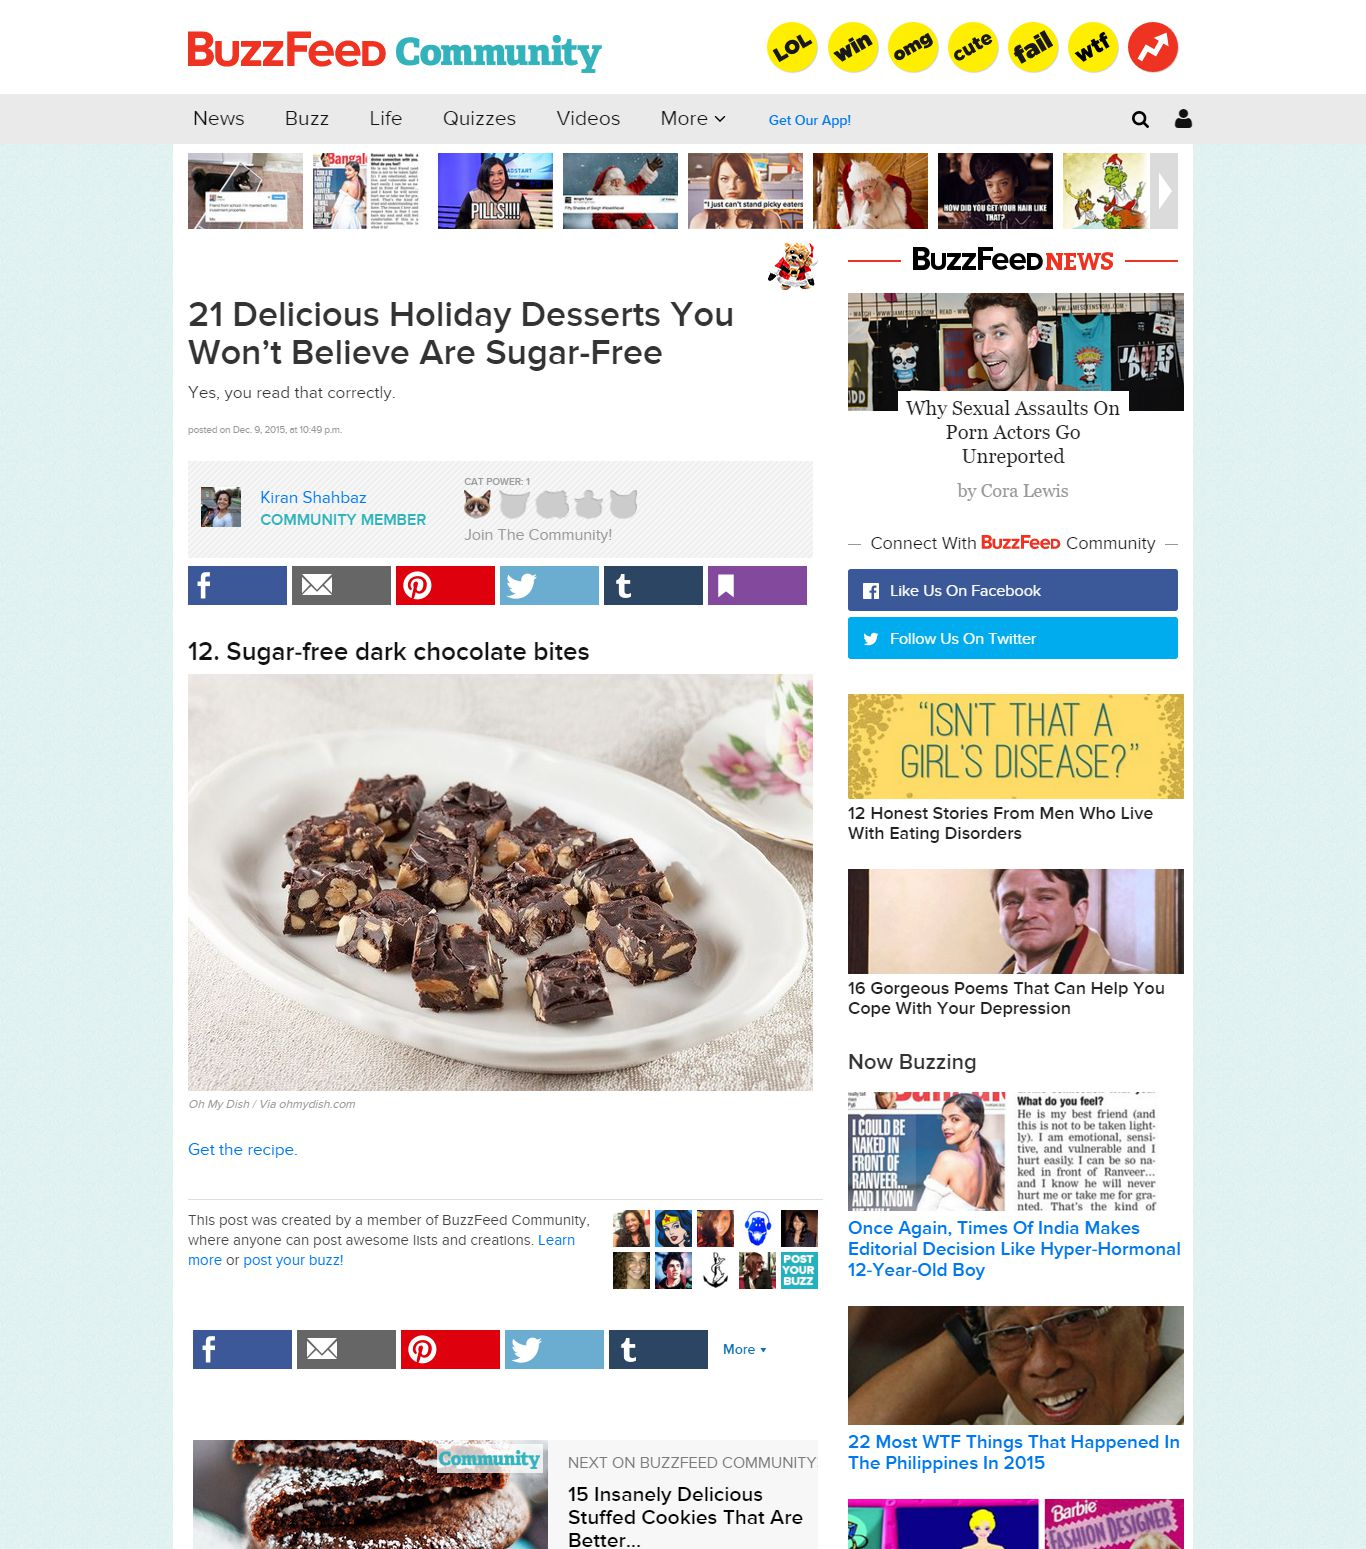 Ohmydish on Buzzfeed.com